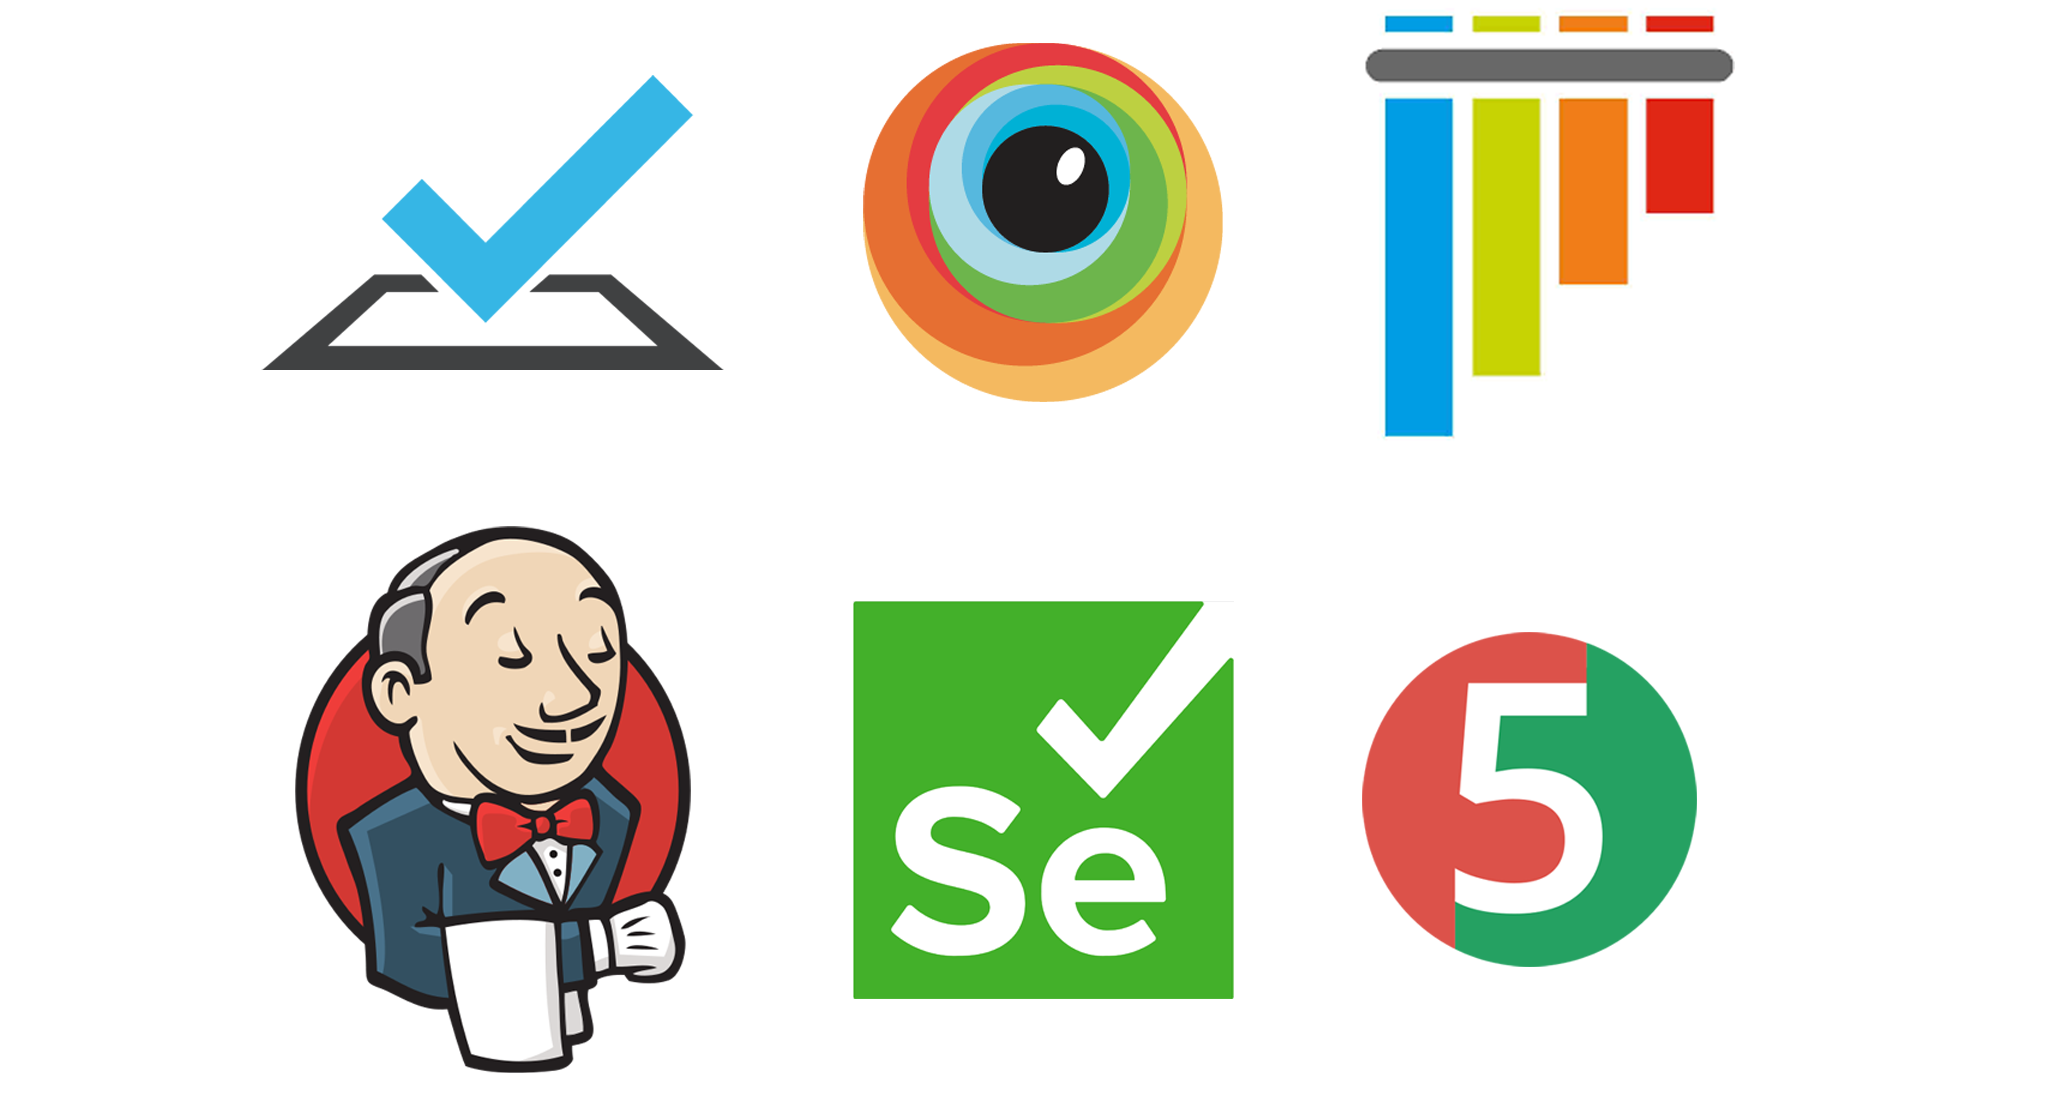 Grid of logos for TestCafé, BrowserStack, pytest, Jenkins, Selenium, and JUnit 5